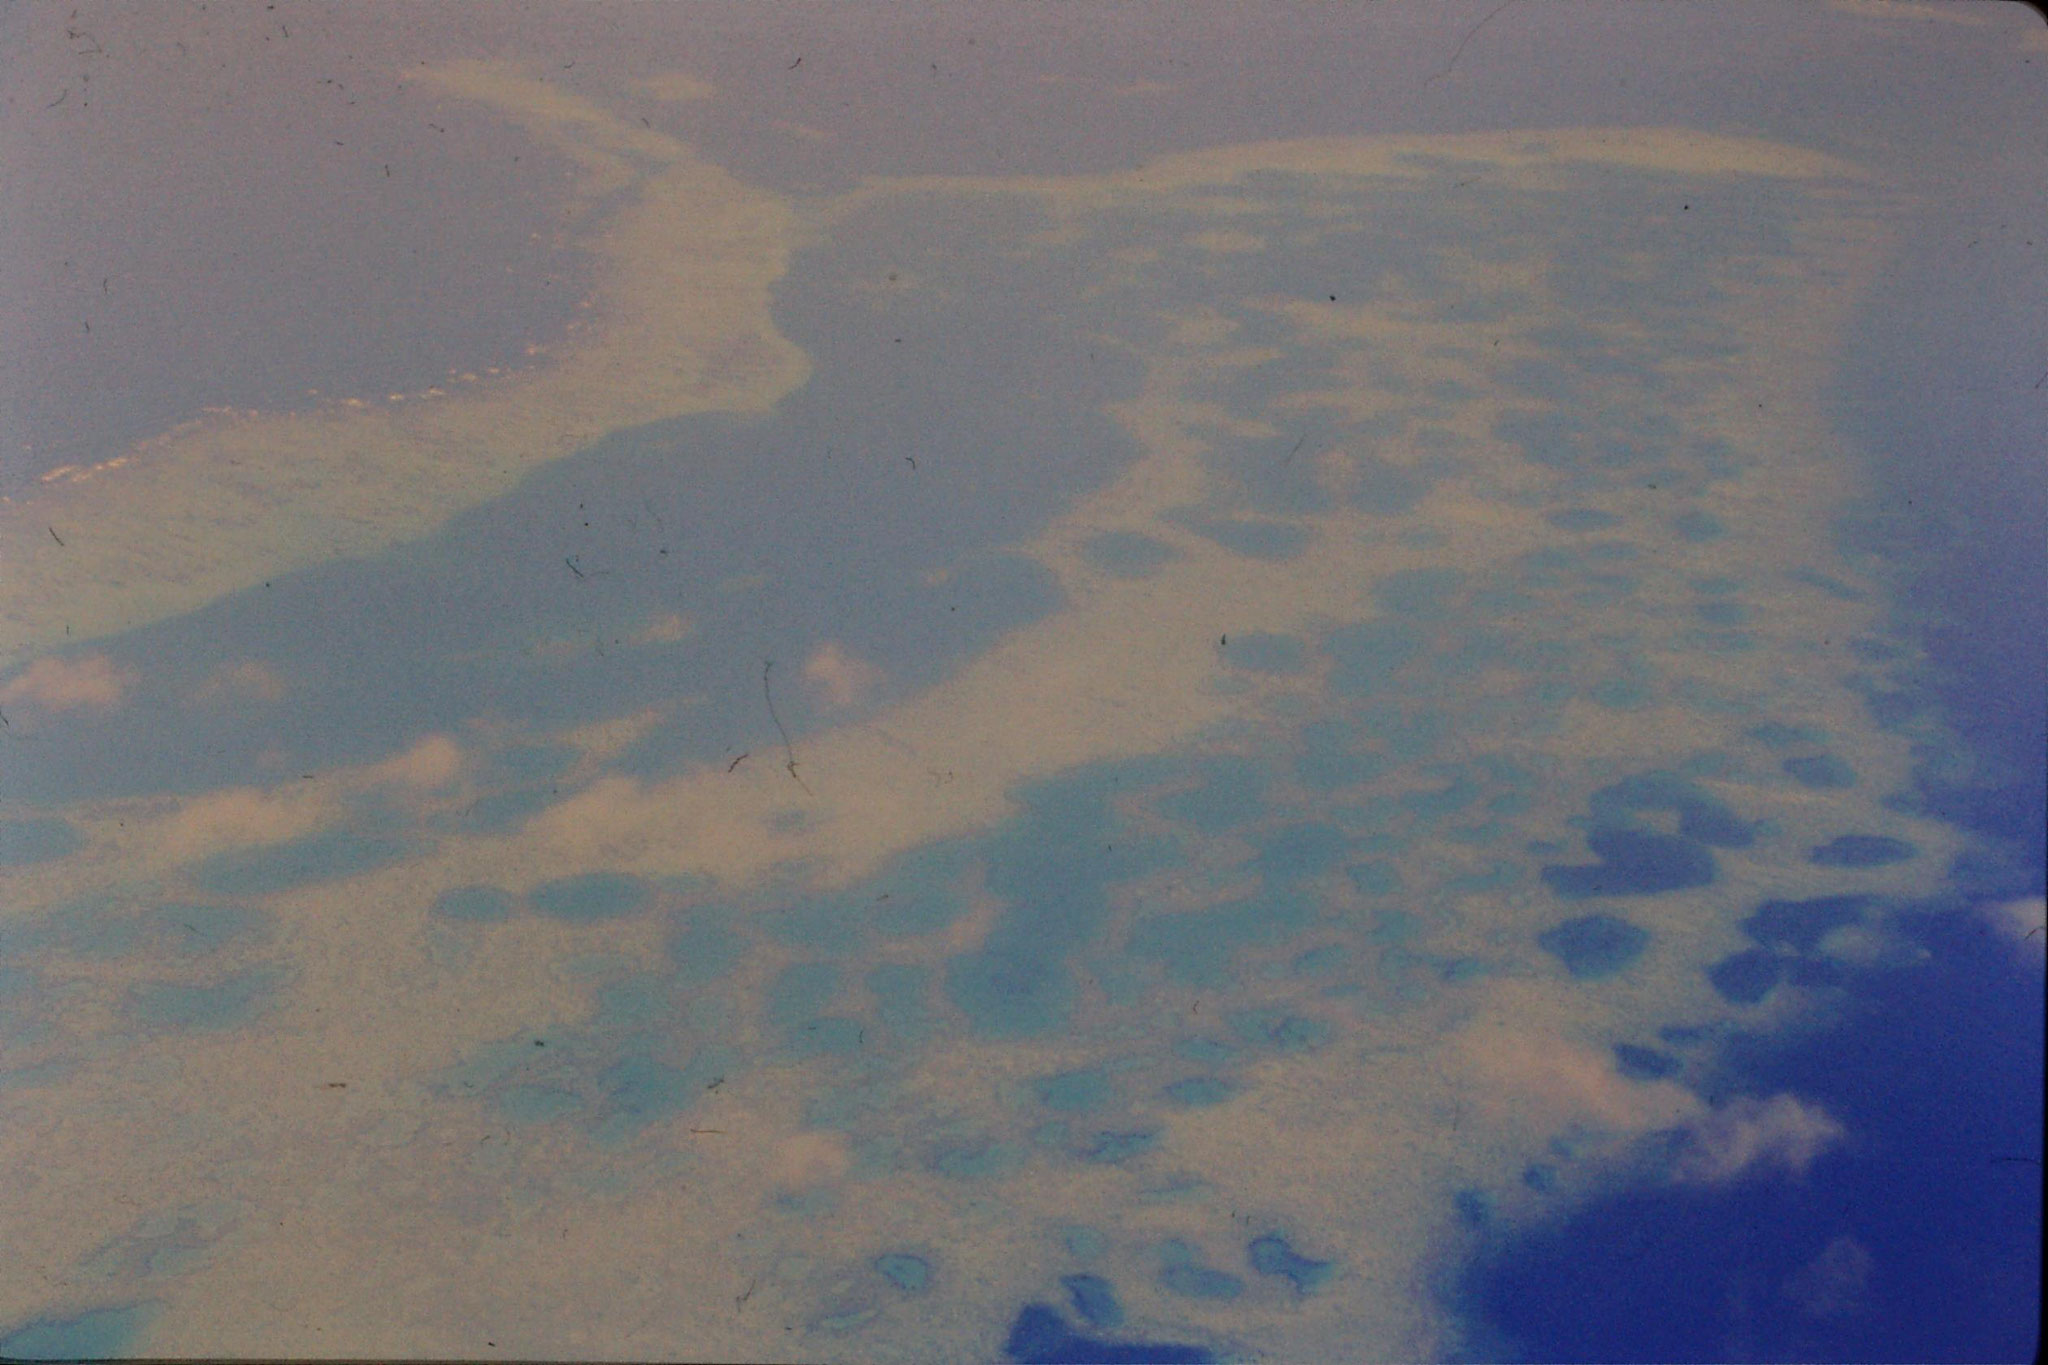 18/11/1990: 19: reefs east of Vita Levu Island